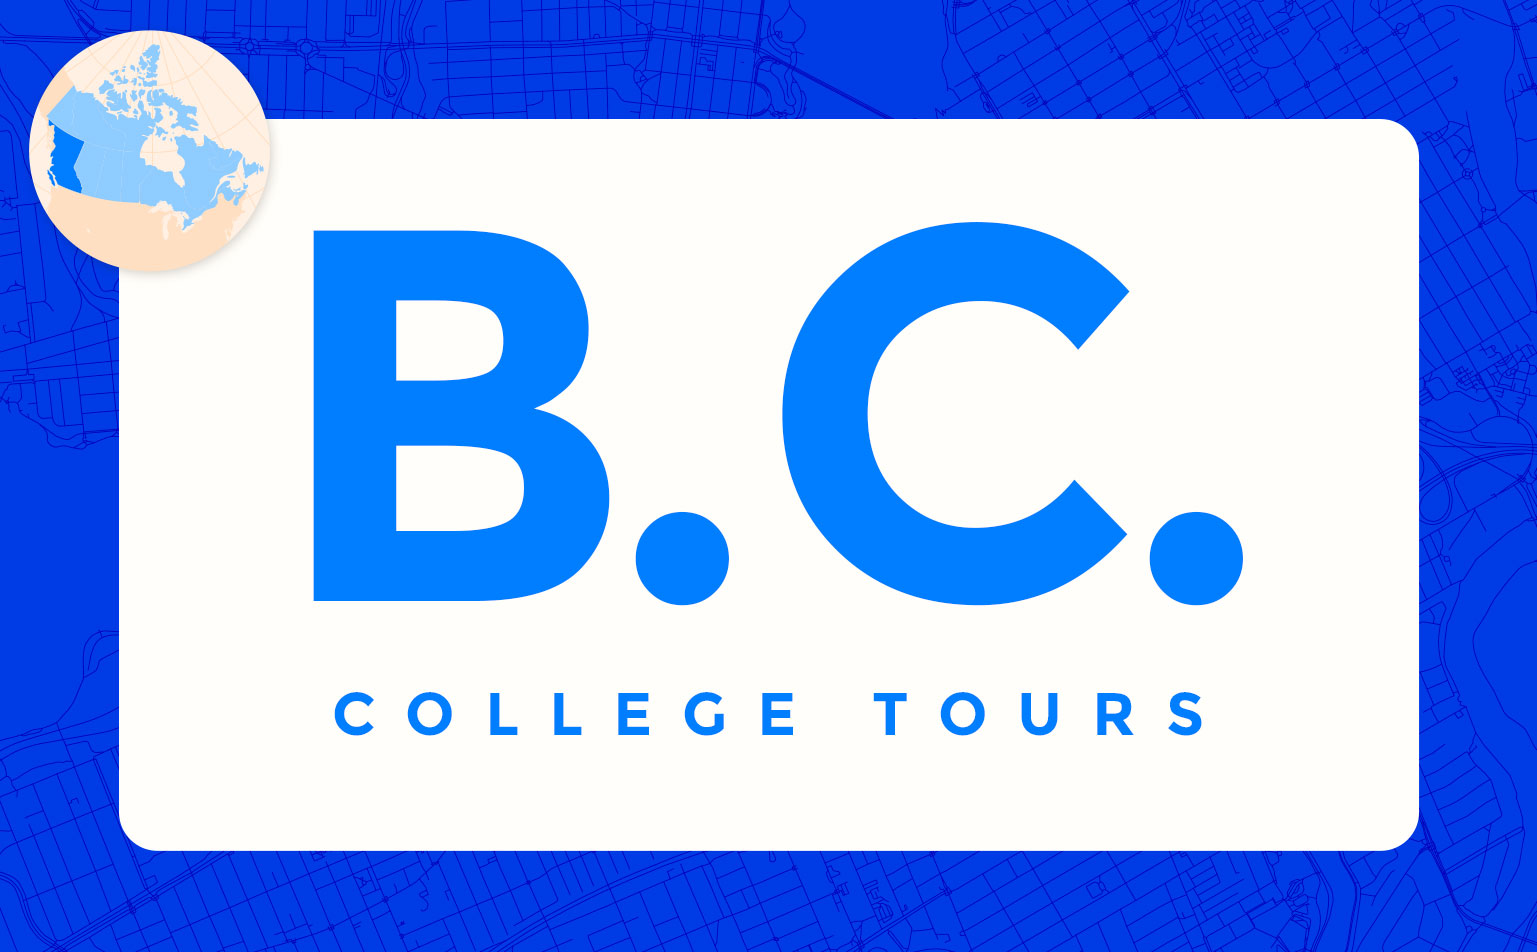 virtual campus university tours in British Columbia